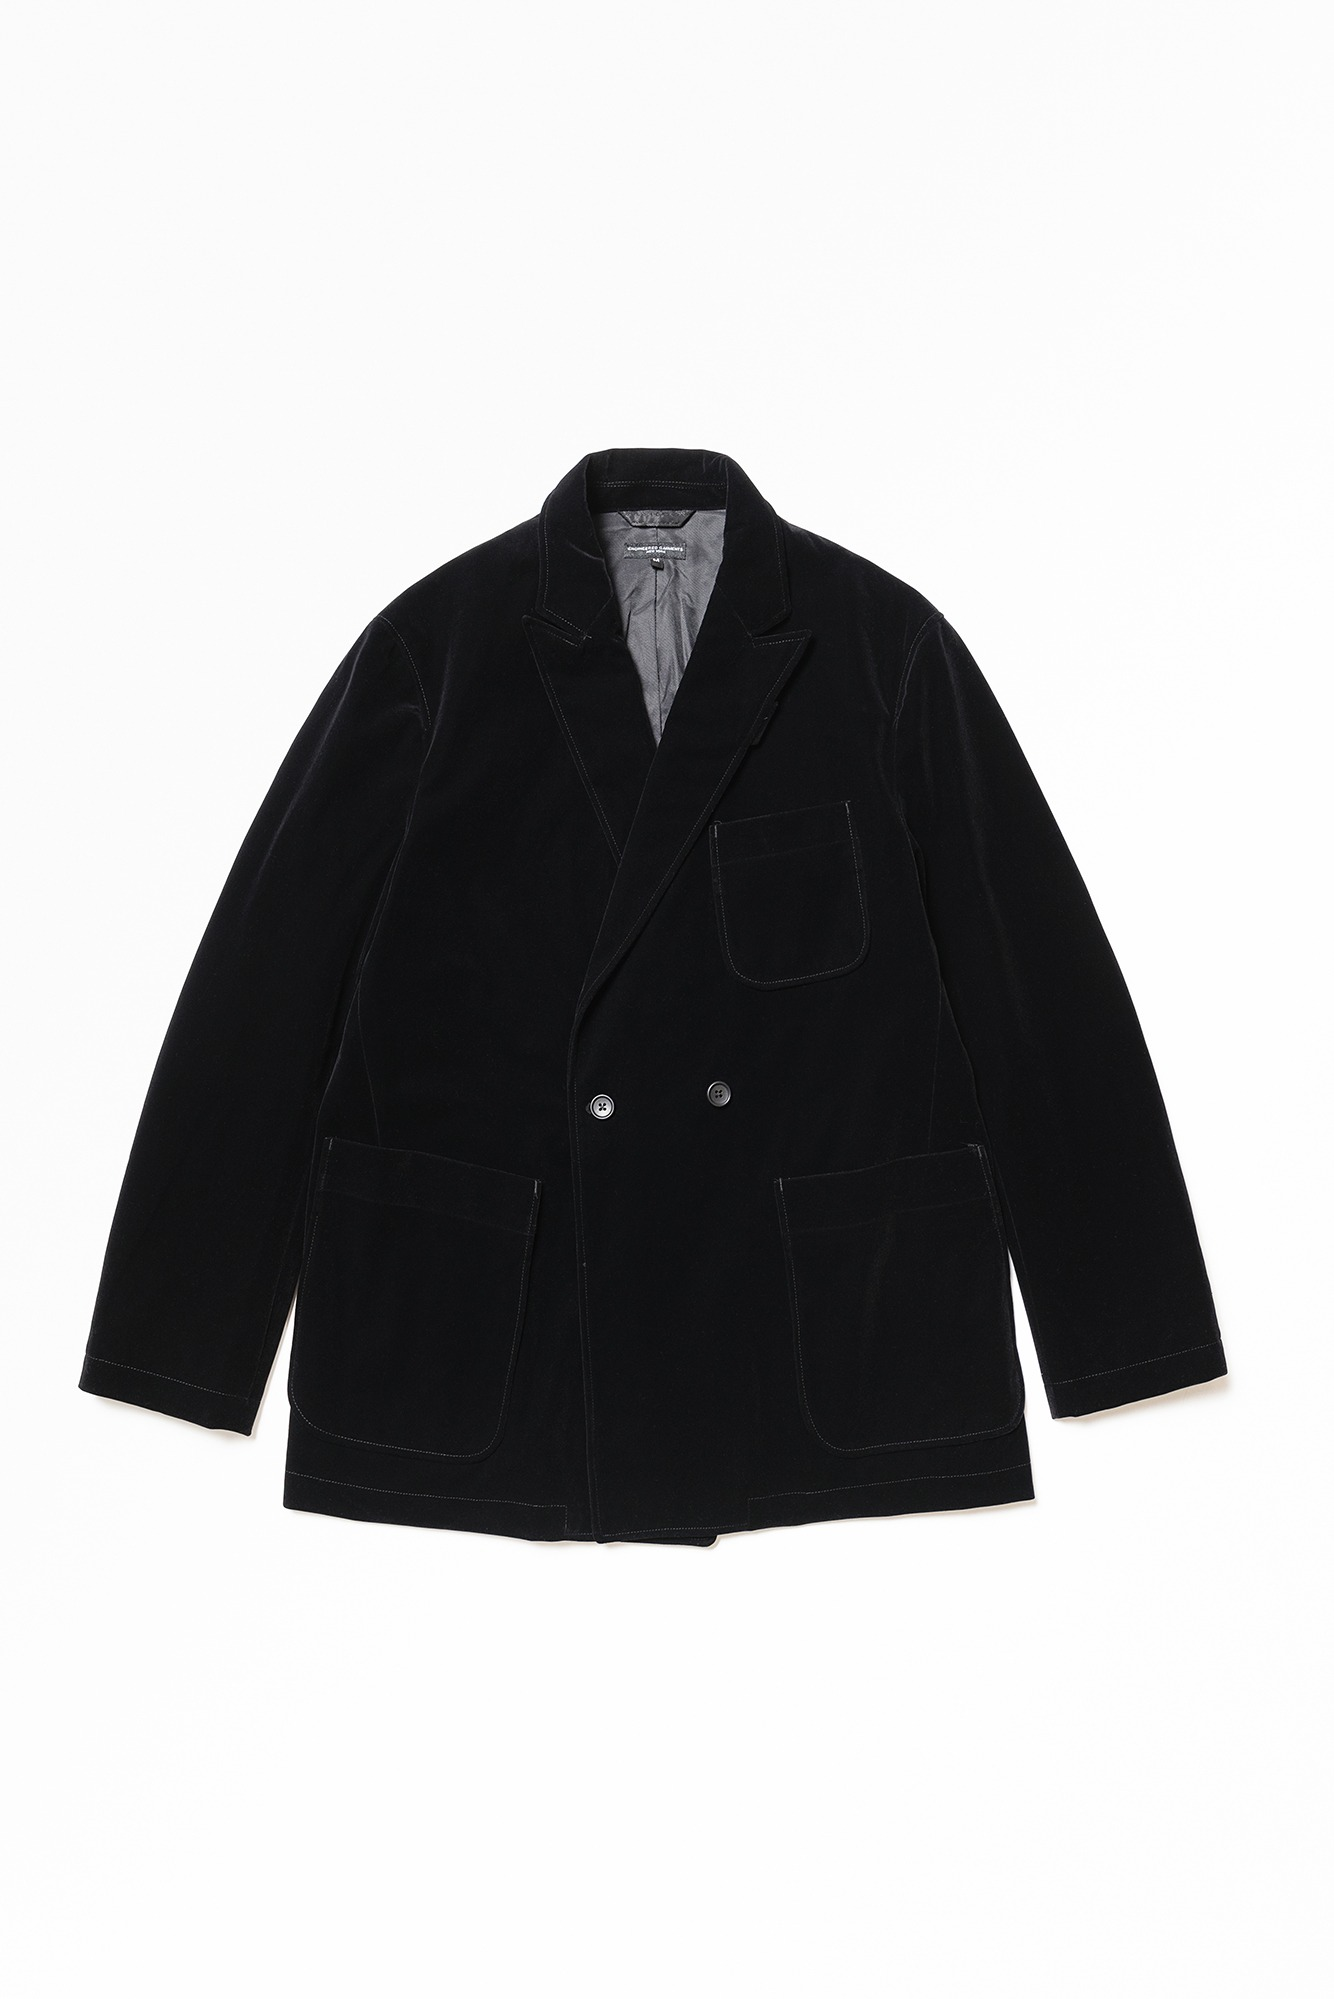 "ENGINEERED GARMENTS Newport Jacket ""Black Flocked Velveteen"""